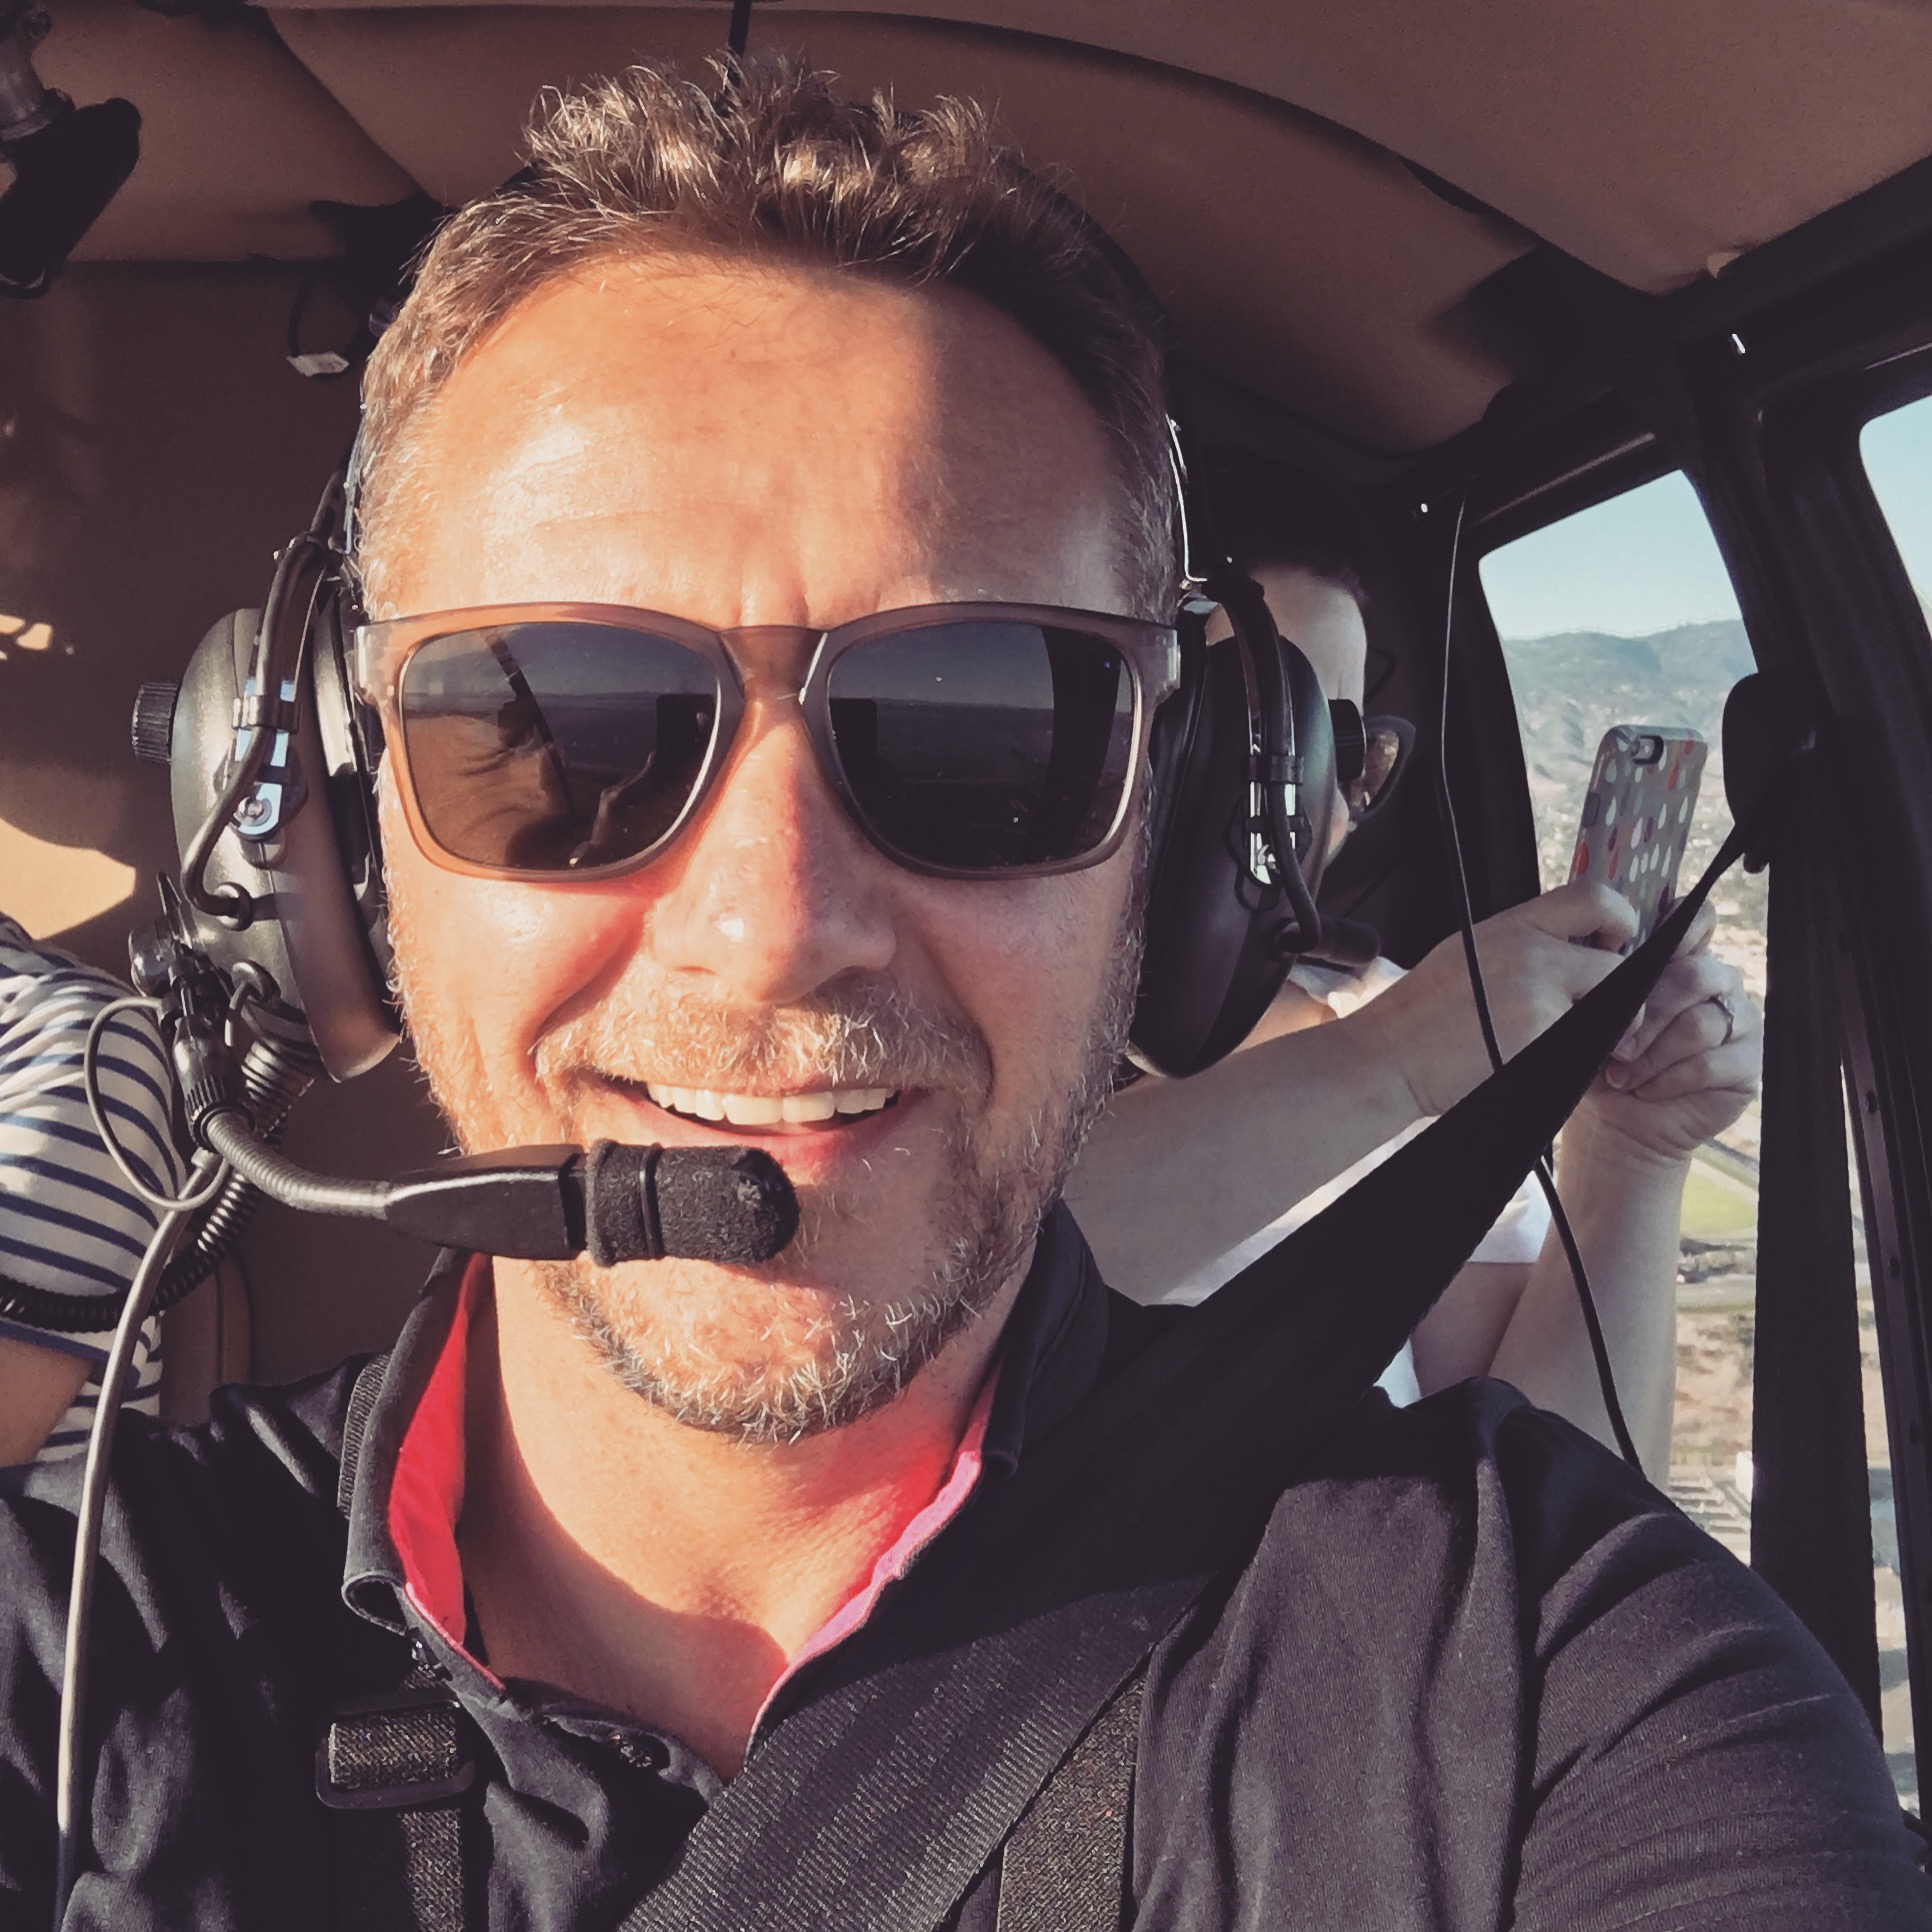 'Piloting' a helicopter in Santa Barbara, 2016